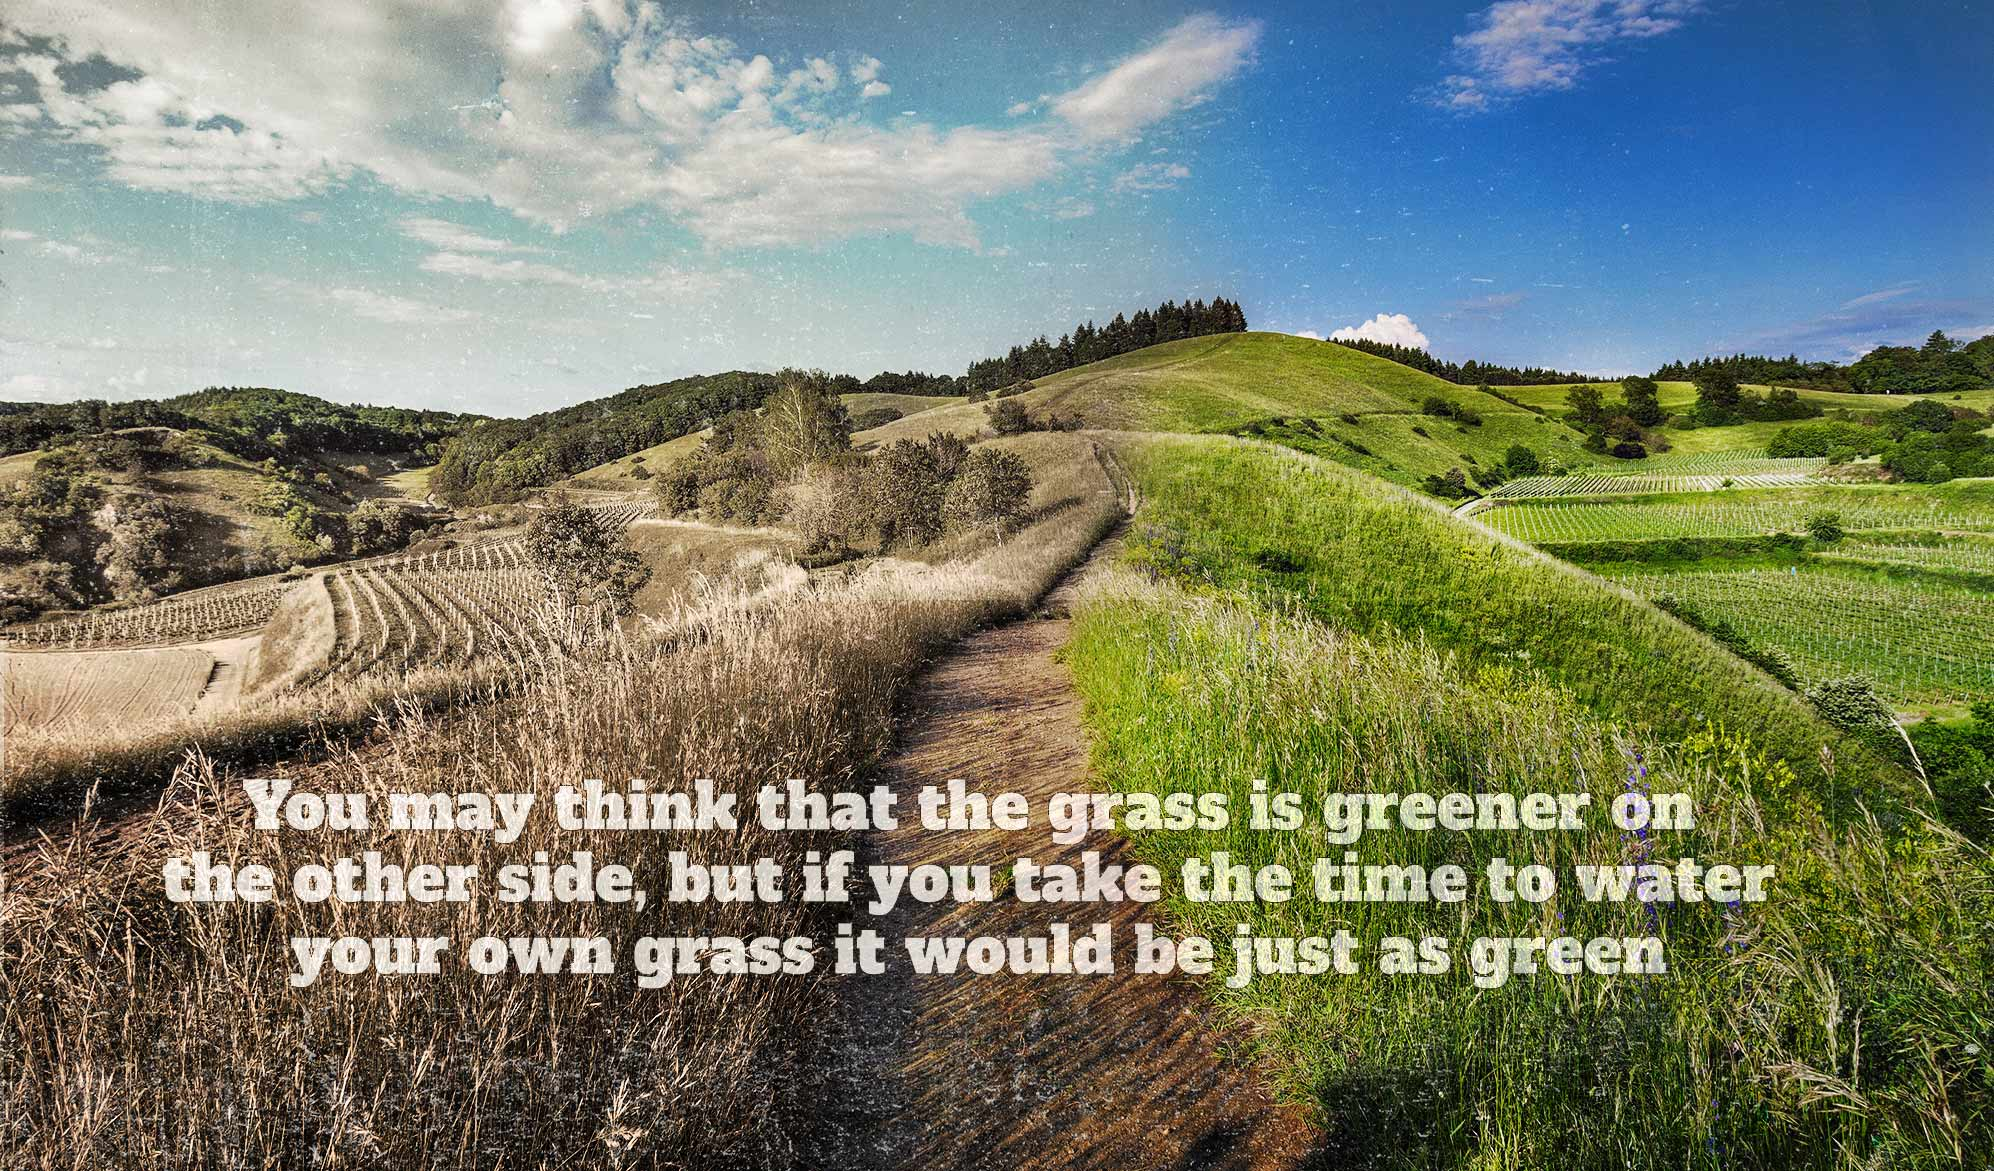 daily inspirational quote image: rolling hills, lushiously green on one side, and brown on the other